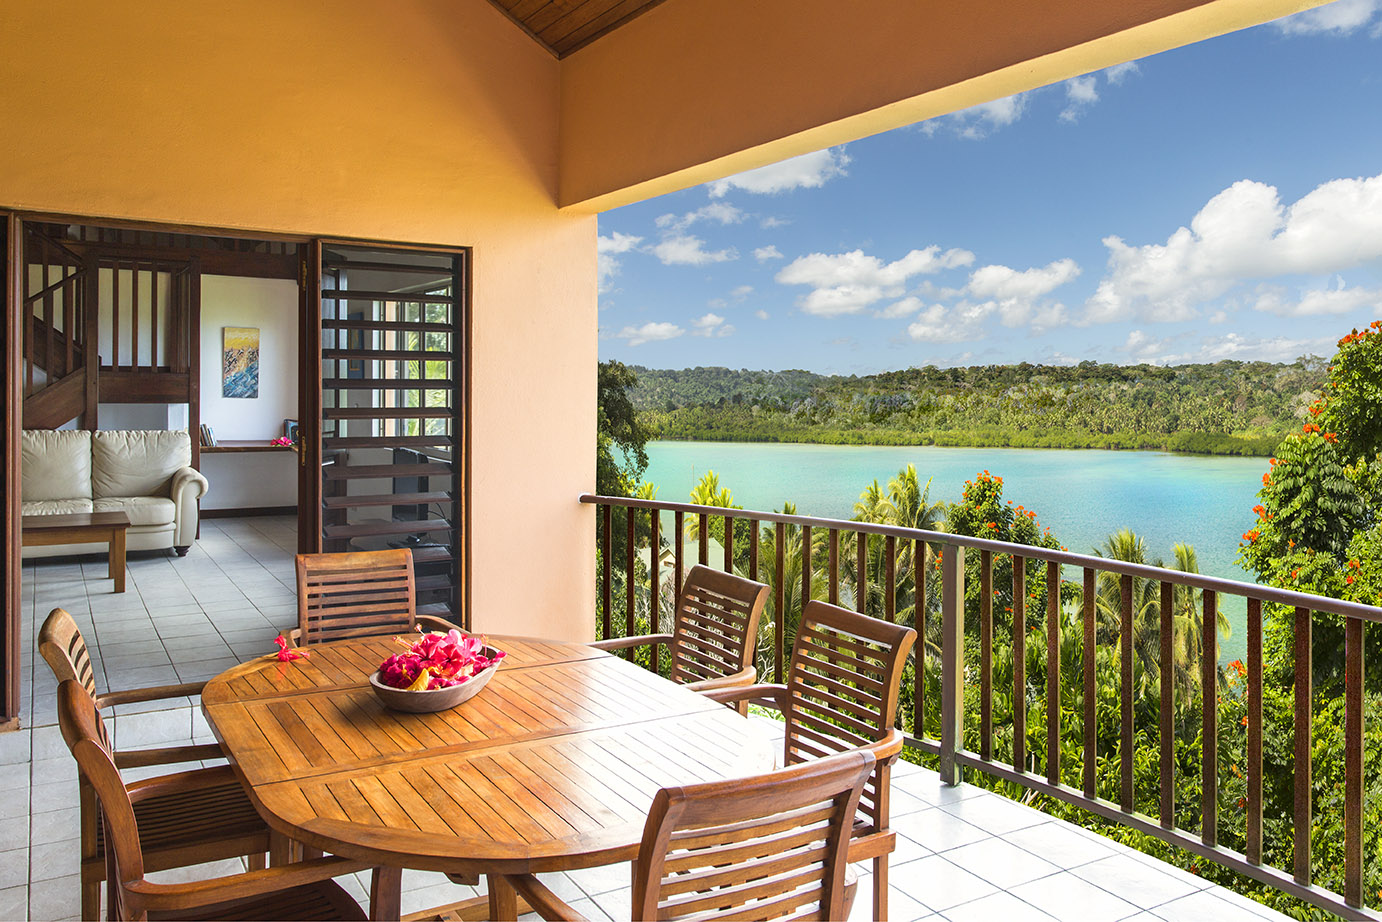 3bed lagoon view apart balcony2.jpg